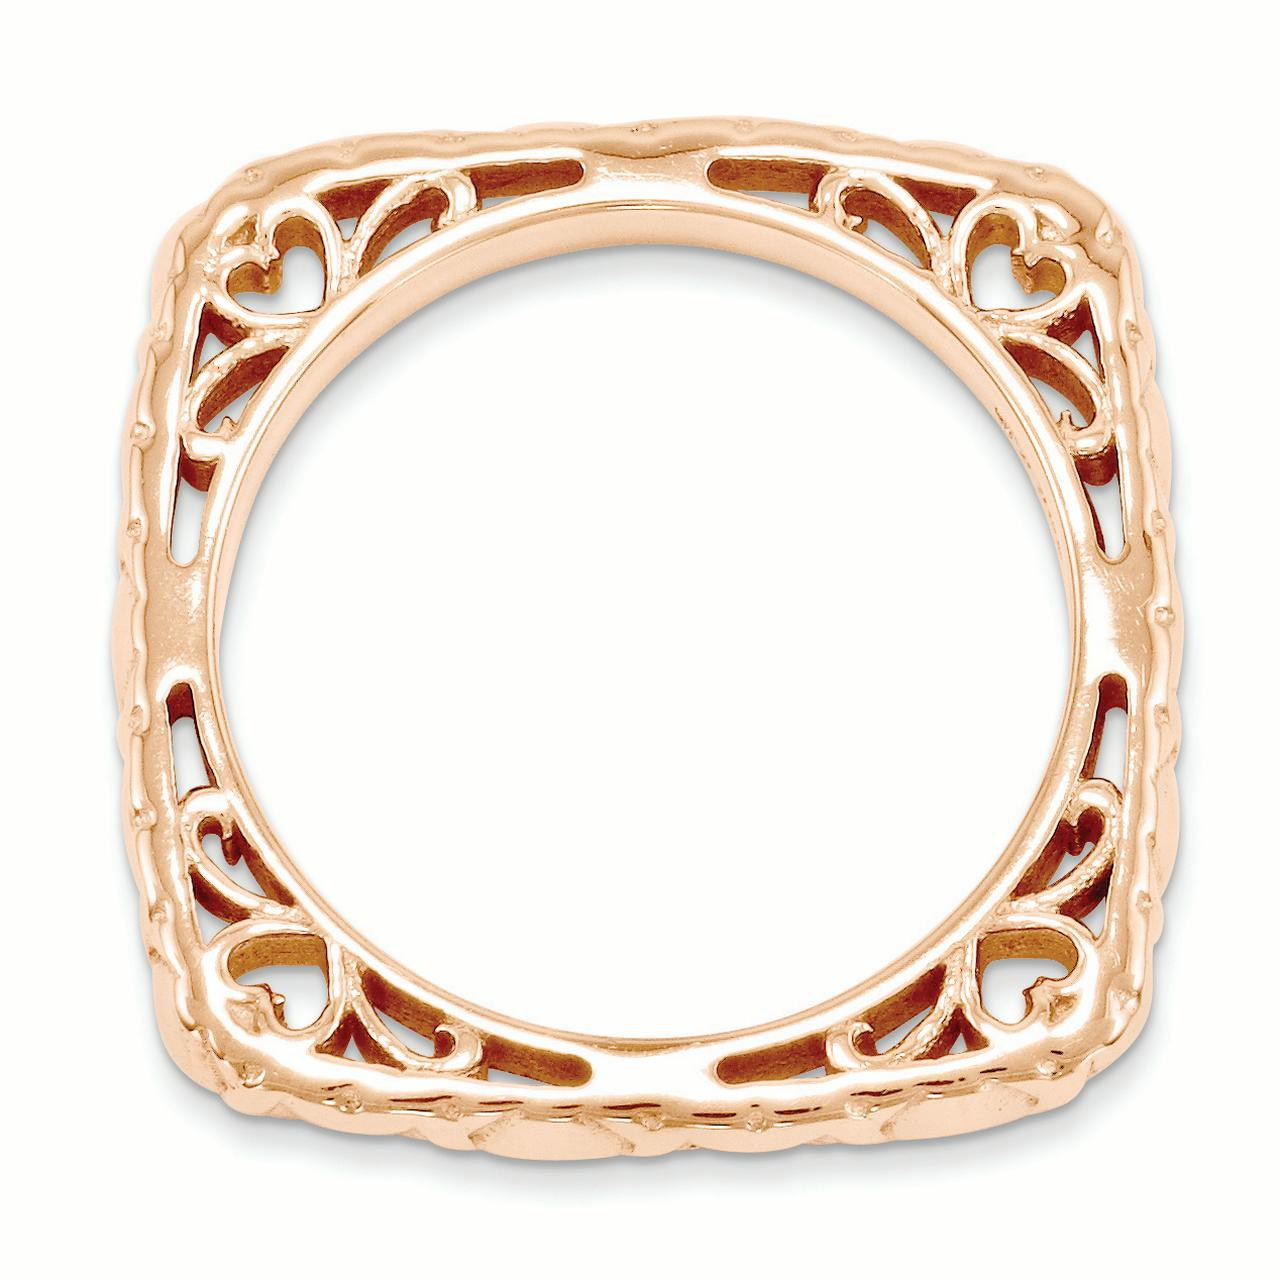 Sterling Silver Stackable Expressions Polished Pink-plate Square Ring Size 6 - image 2 de 3